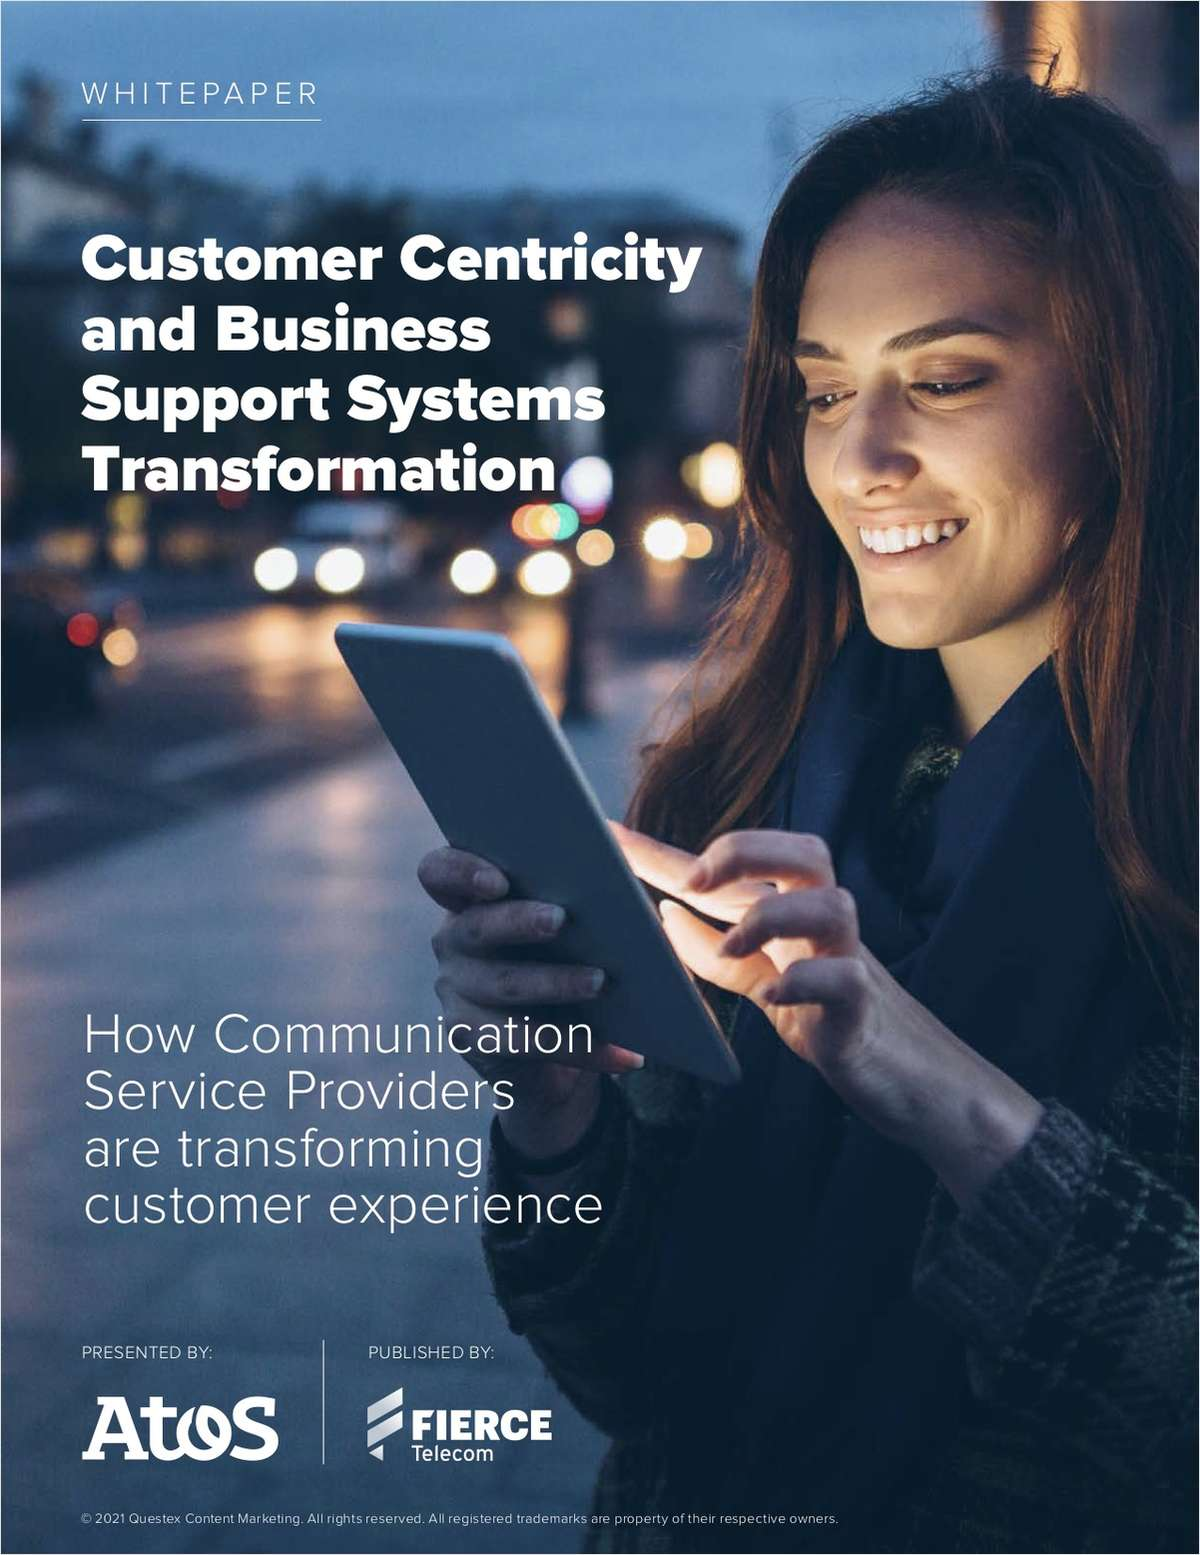 How Communication Service Providers are transforming customer experience